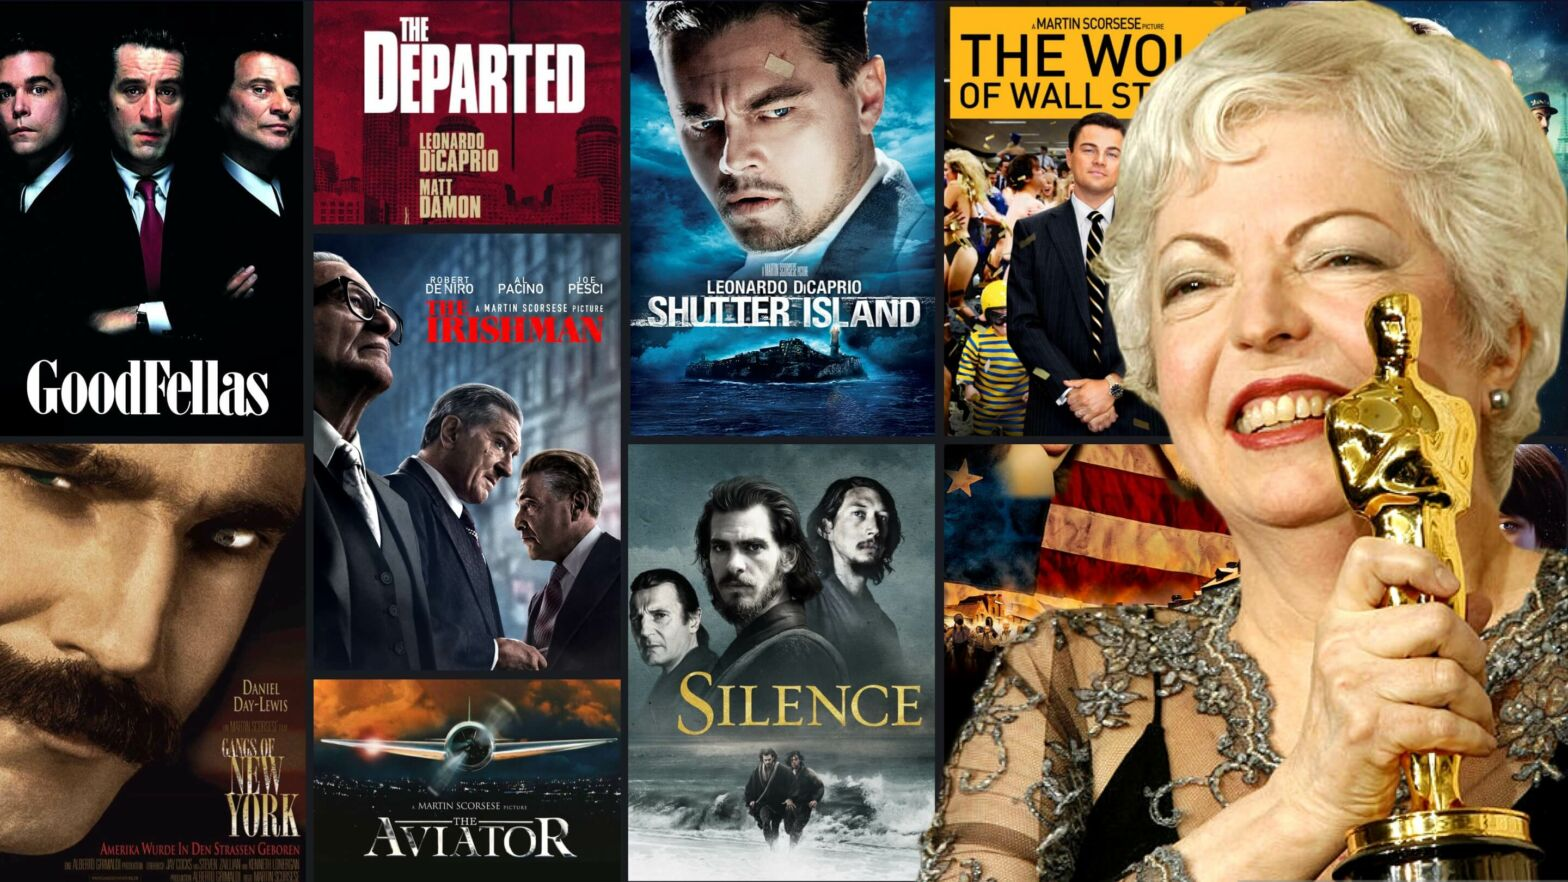 Thelma Schoonmaker Editing Style and Editing Tips